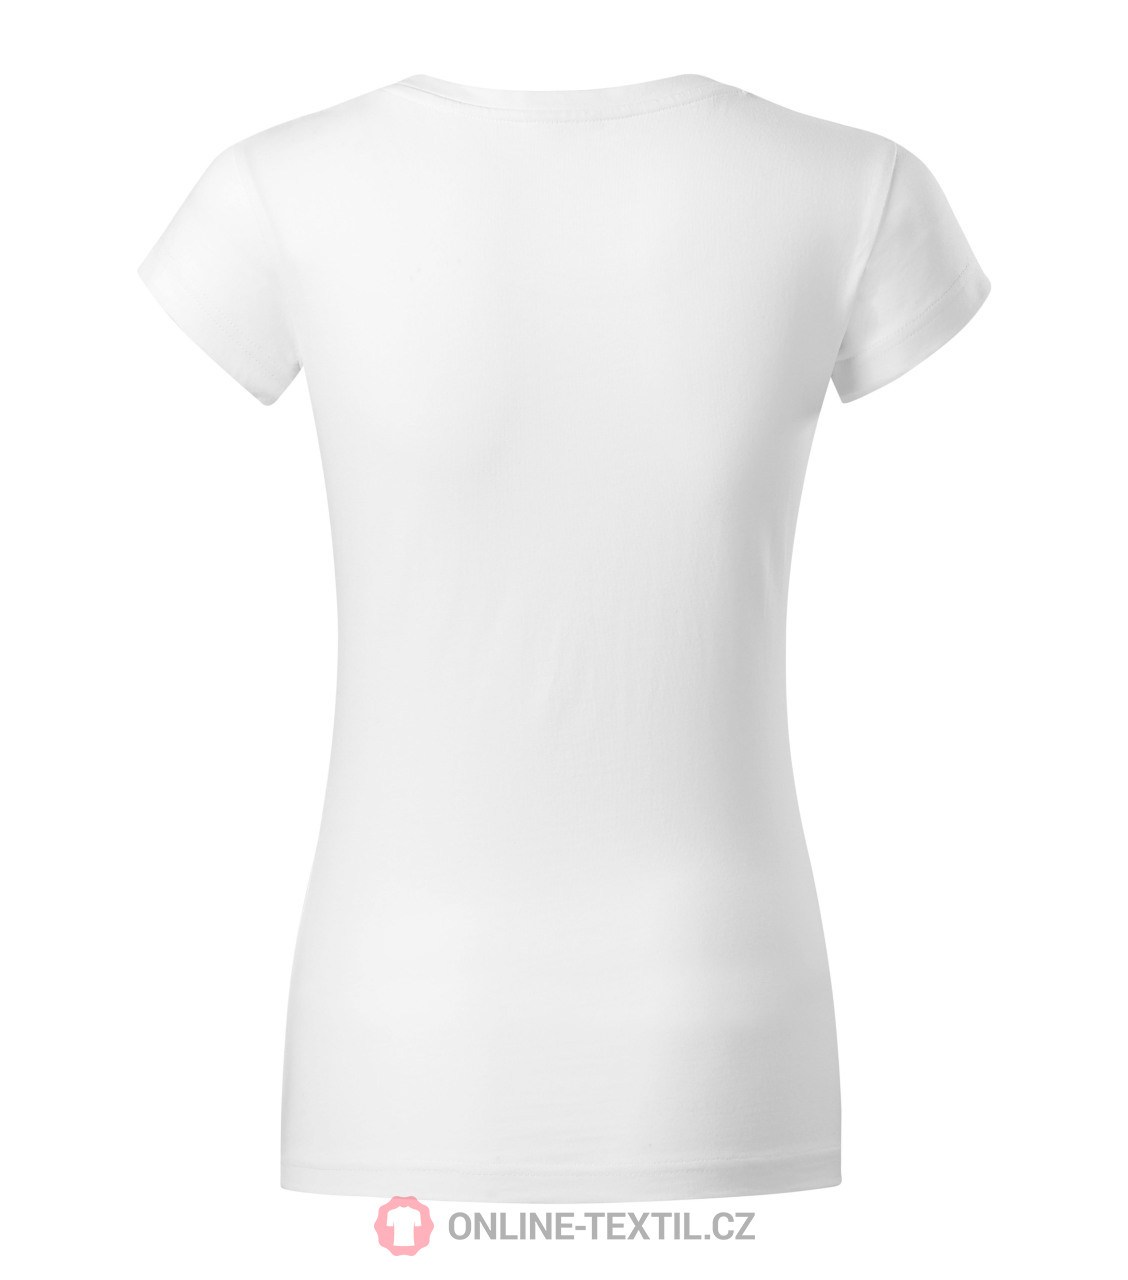 9f0dbc6b ADLER CZECH Heavyweight ladies T-shirt Fit V-neck 162 - white from ...